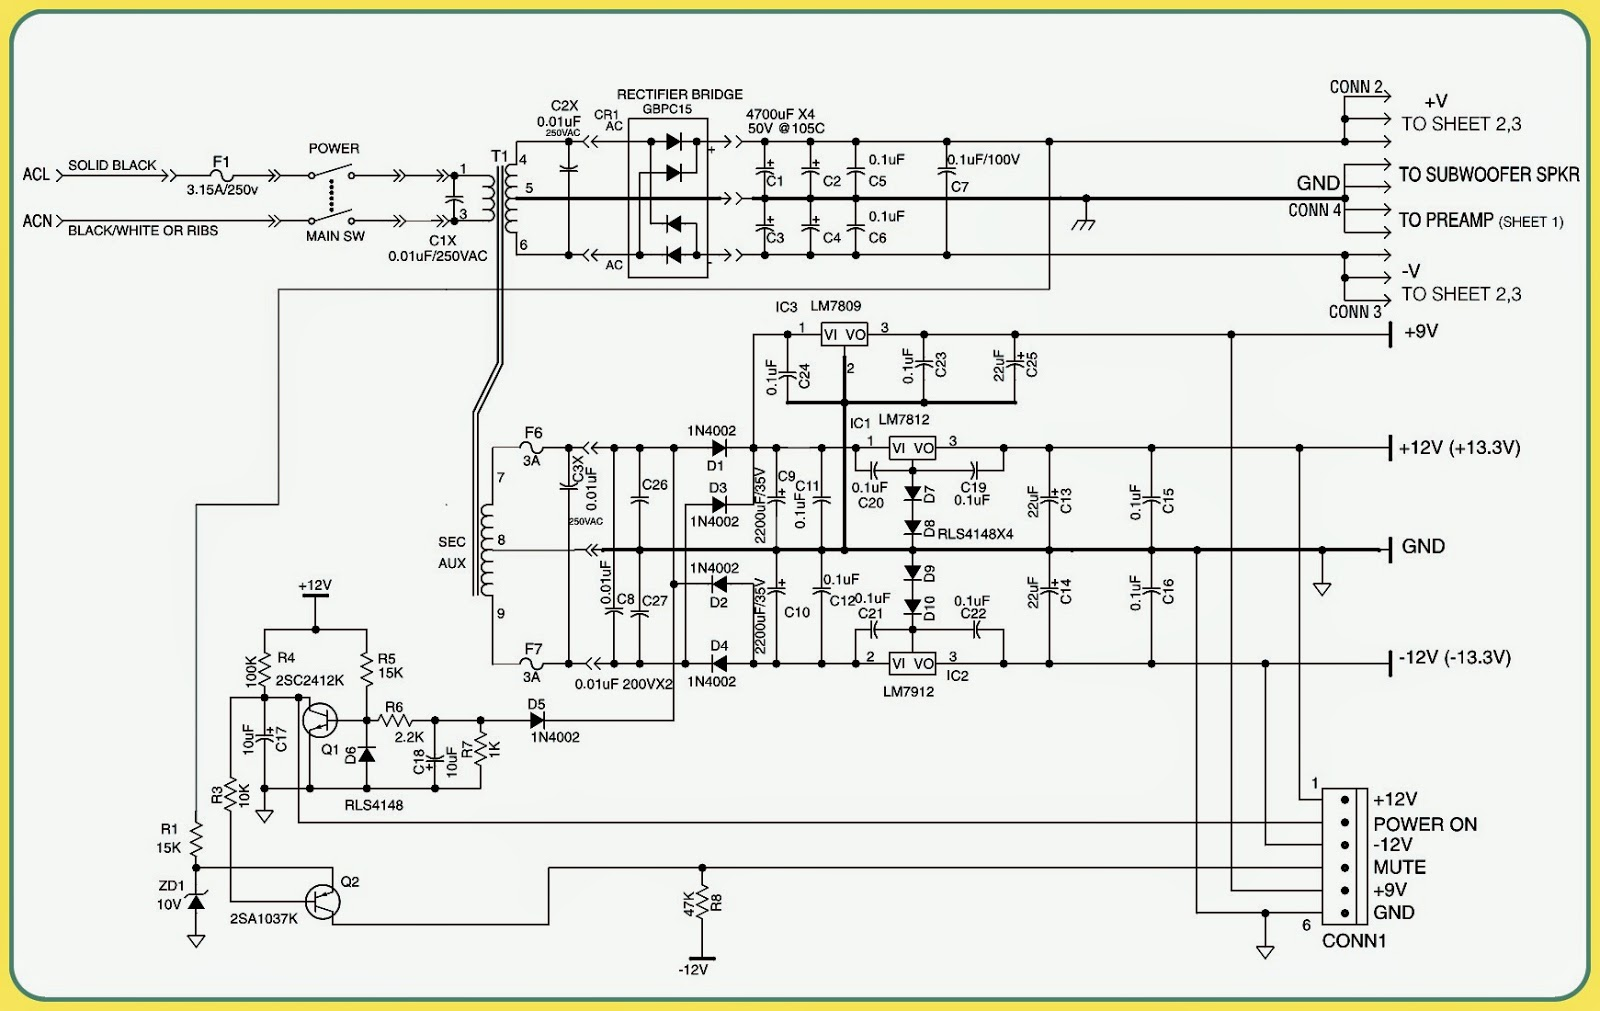 jbl bass550 subwoofer wiring diagram schematics wiring diagrams u2022 rh parntesis co Car Subwoofer Wiring Diagram Dual 4 Ohm Subwoofer Wiring Diagram